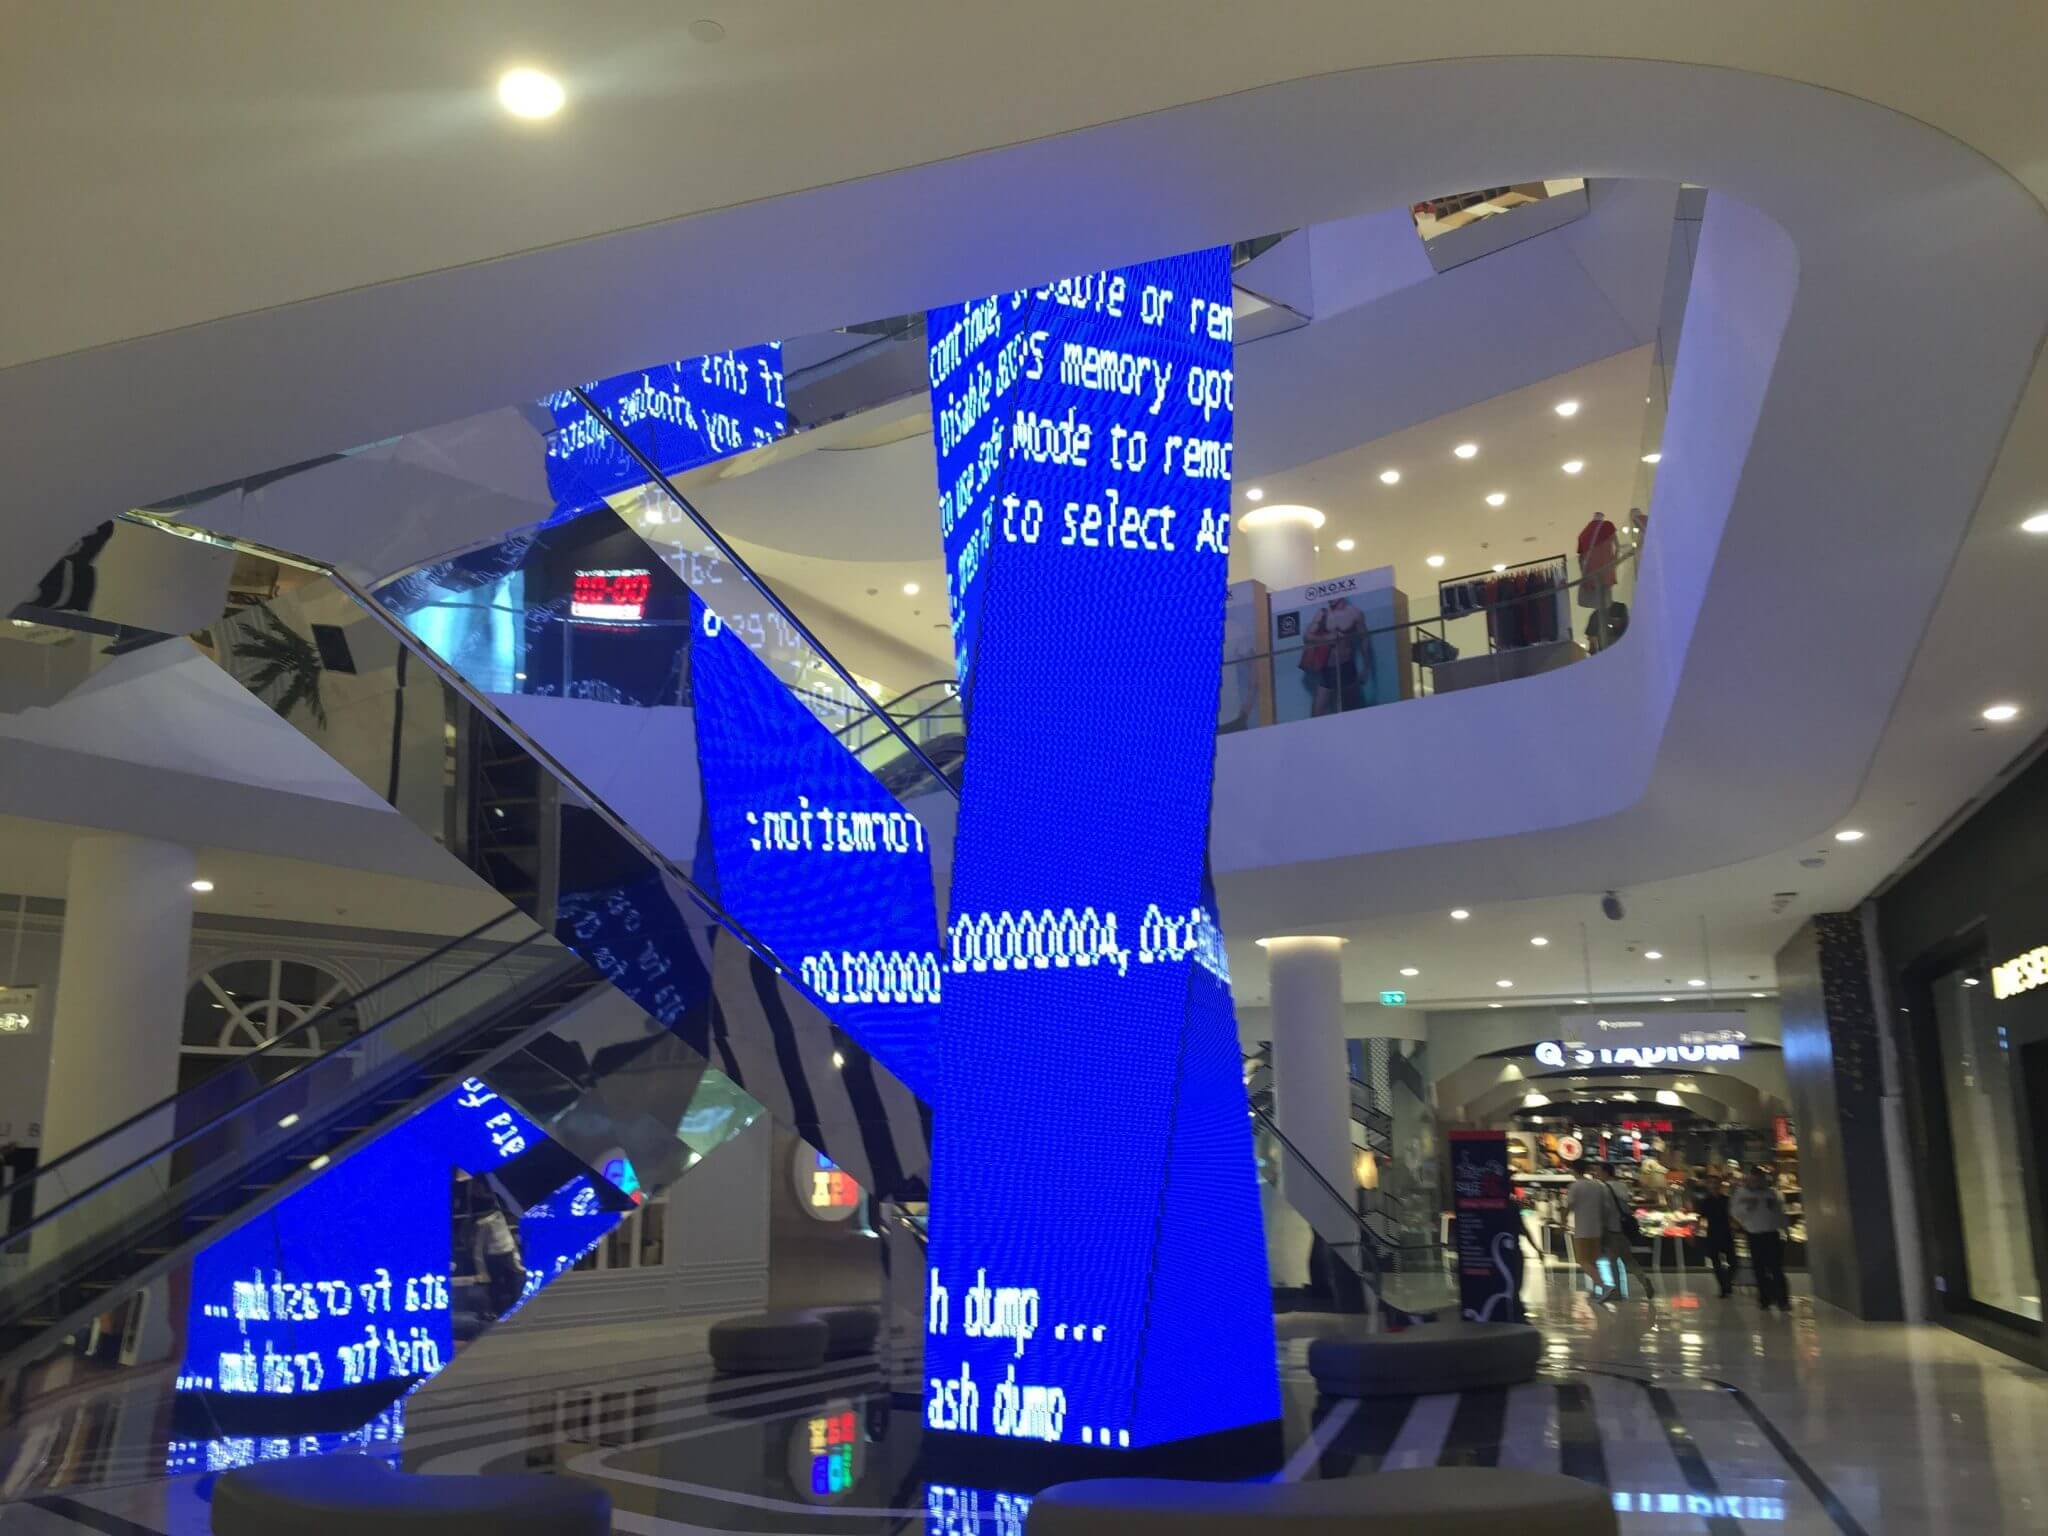 epic bsod - Tela Azul da Morte do Windows 10 ganha QR Codes